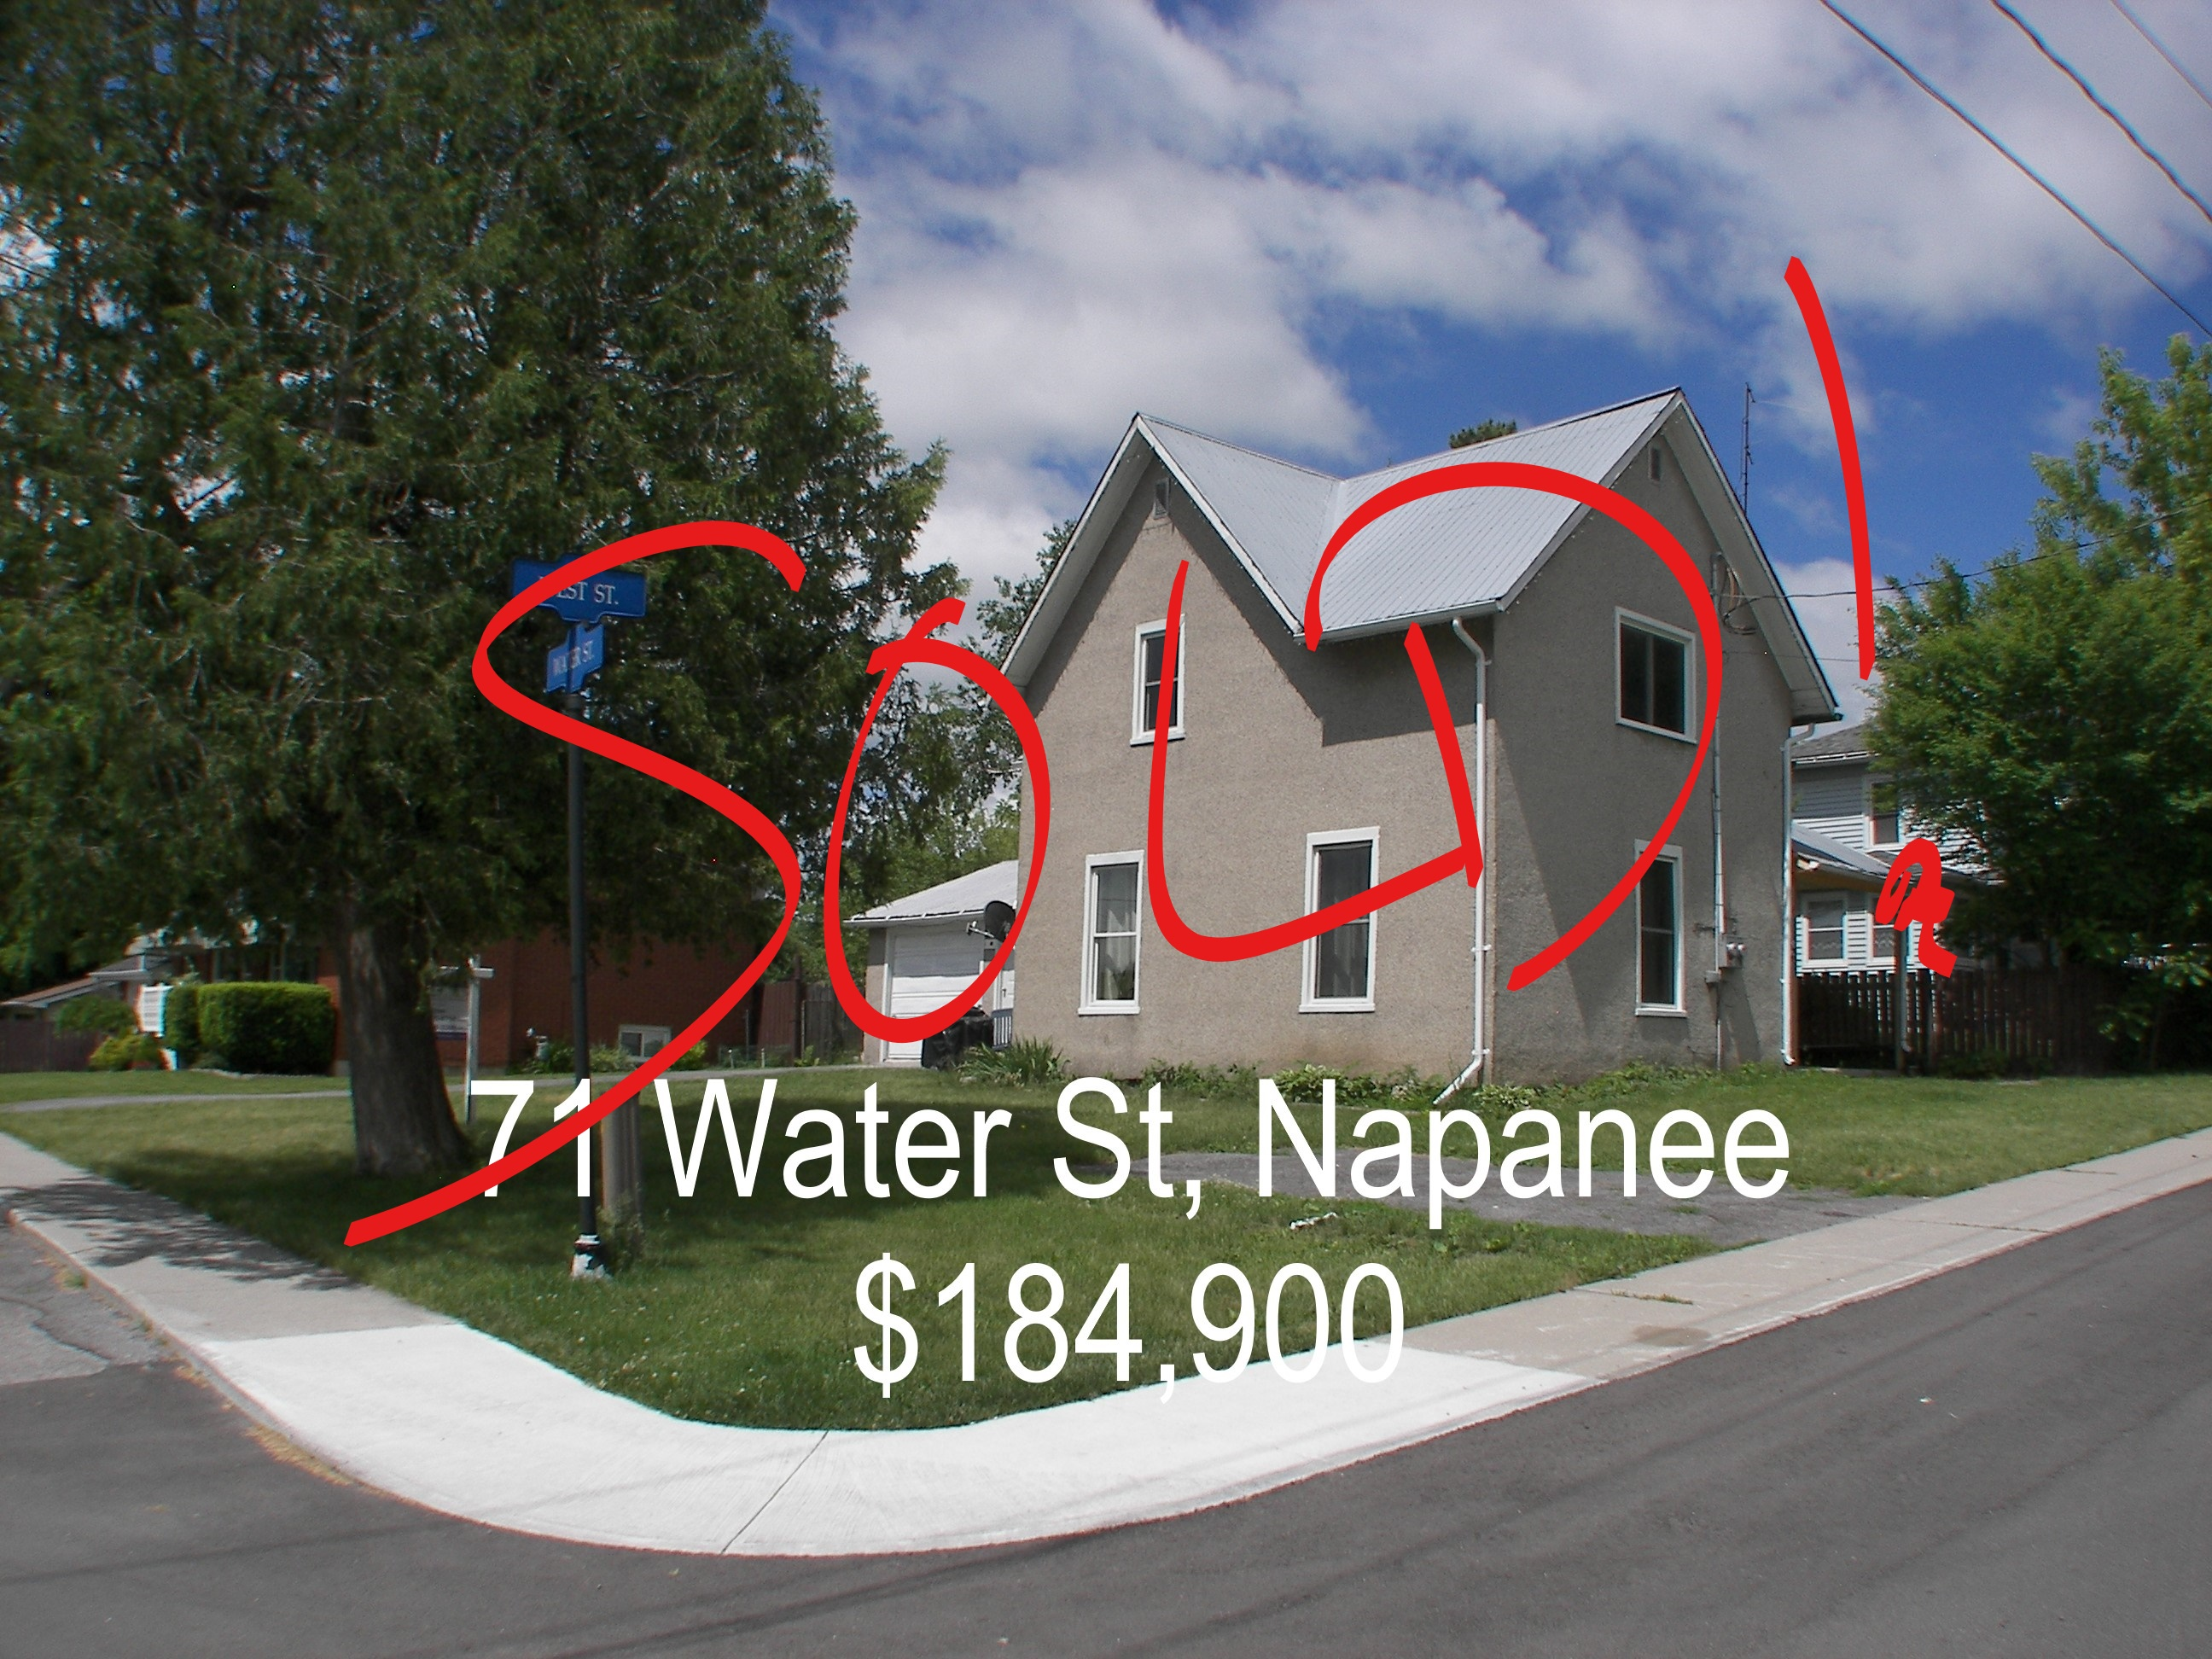 MLS listing details - 71 Water St, Napanee ON